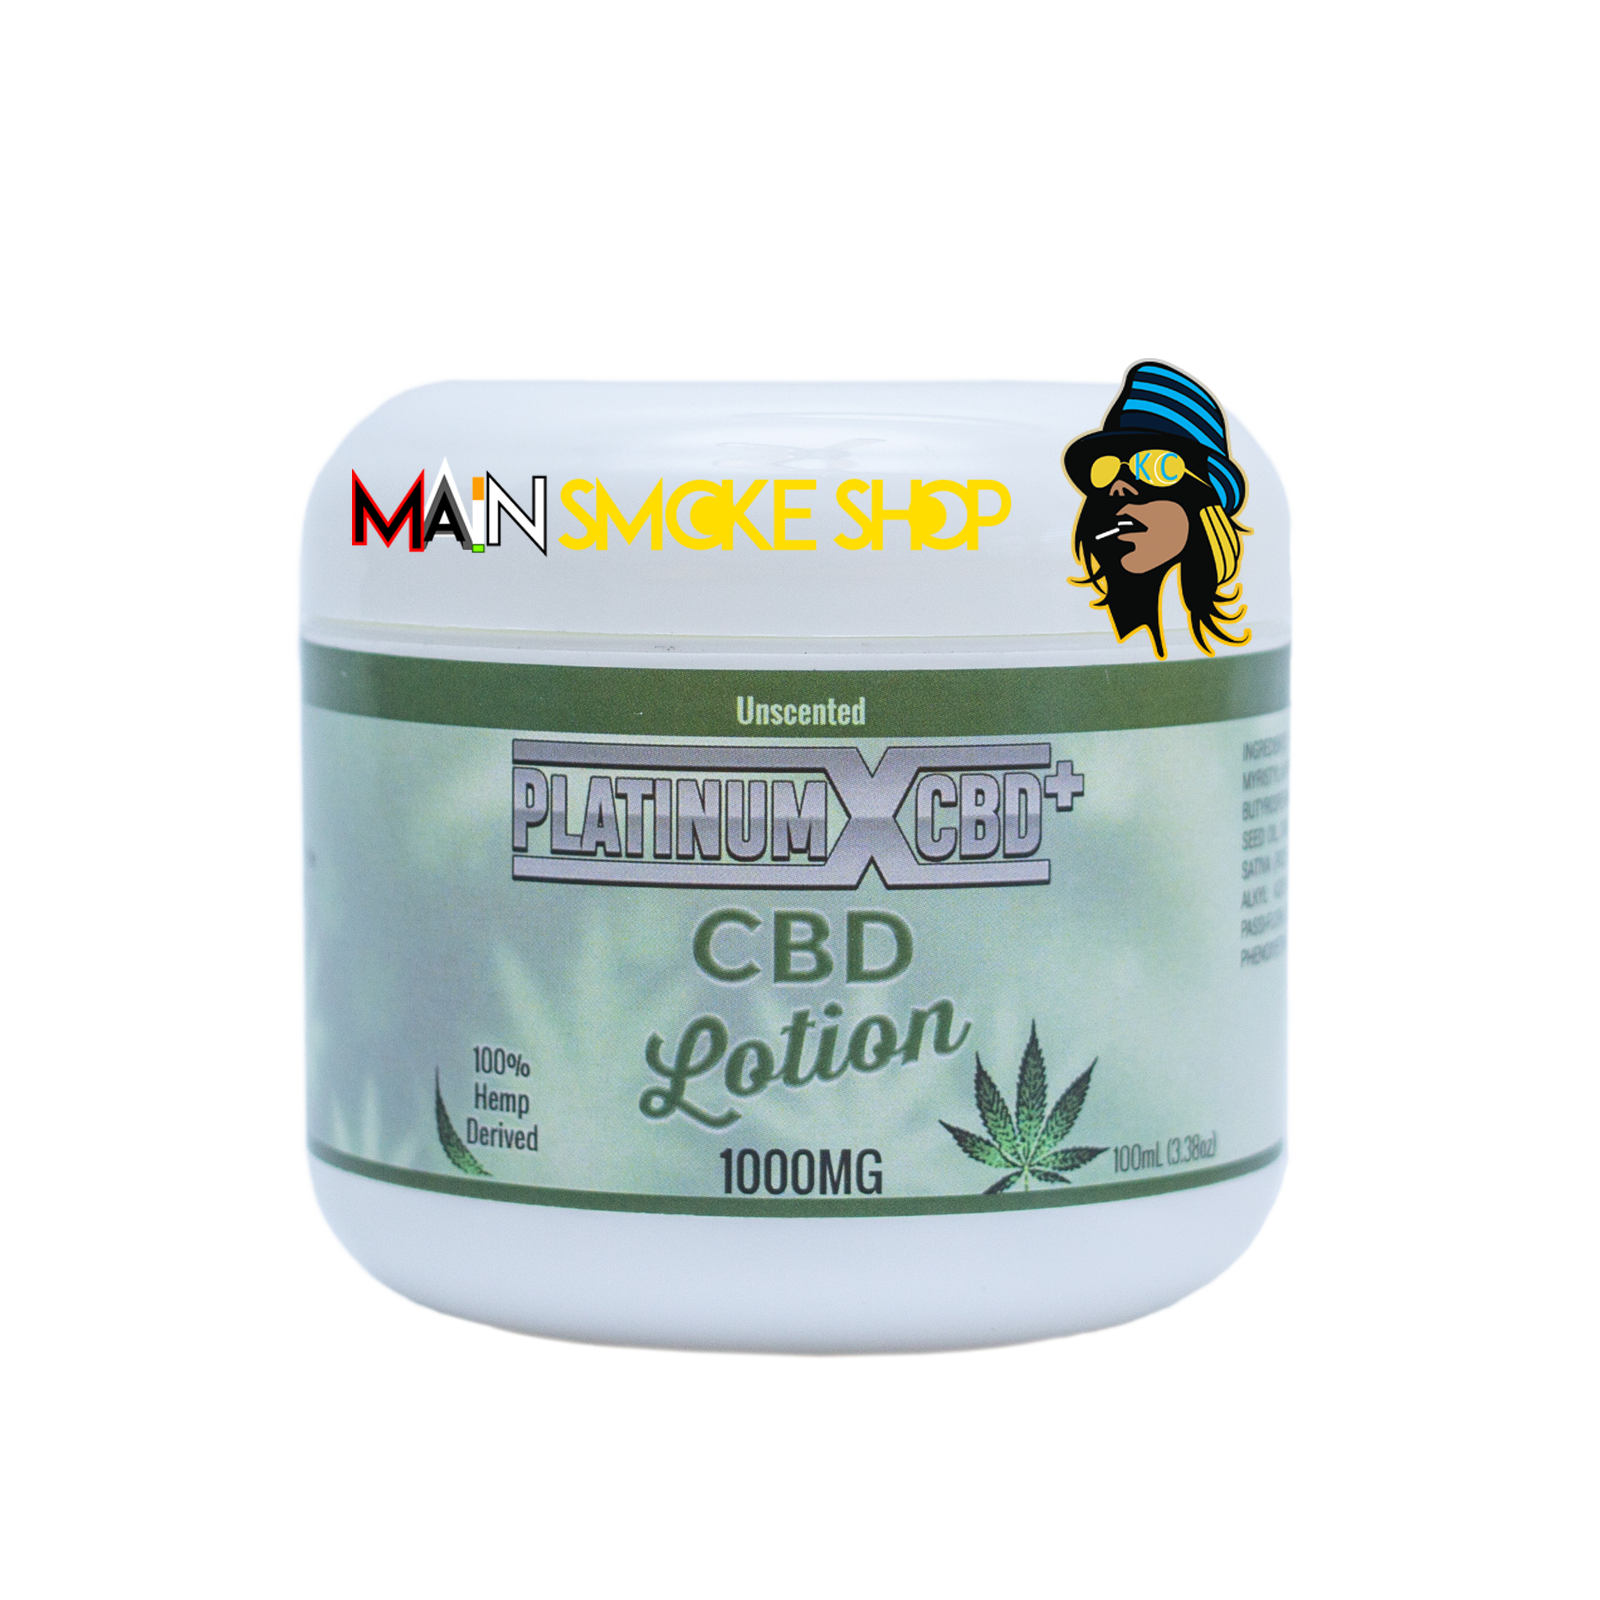 Platinum CBD lotion